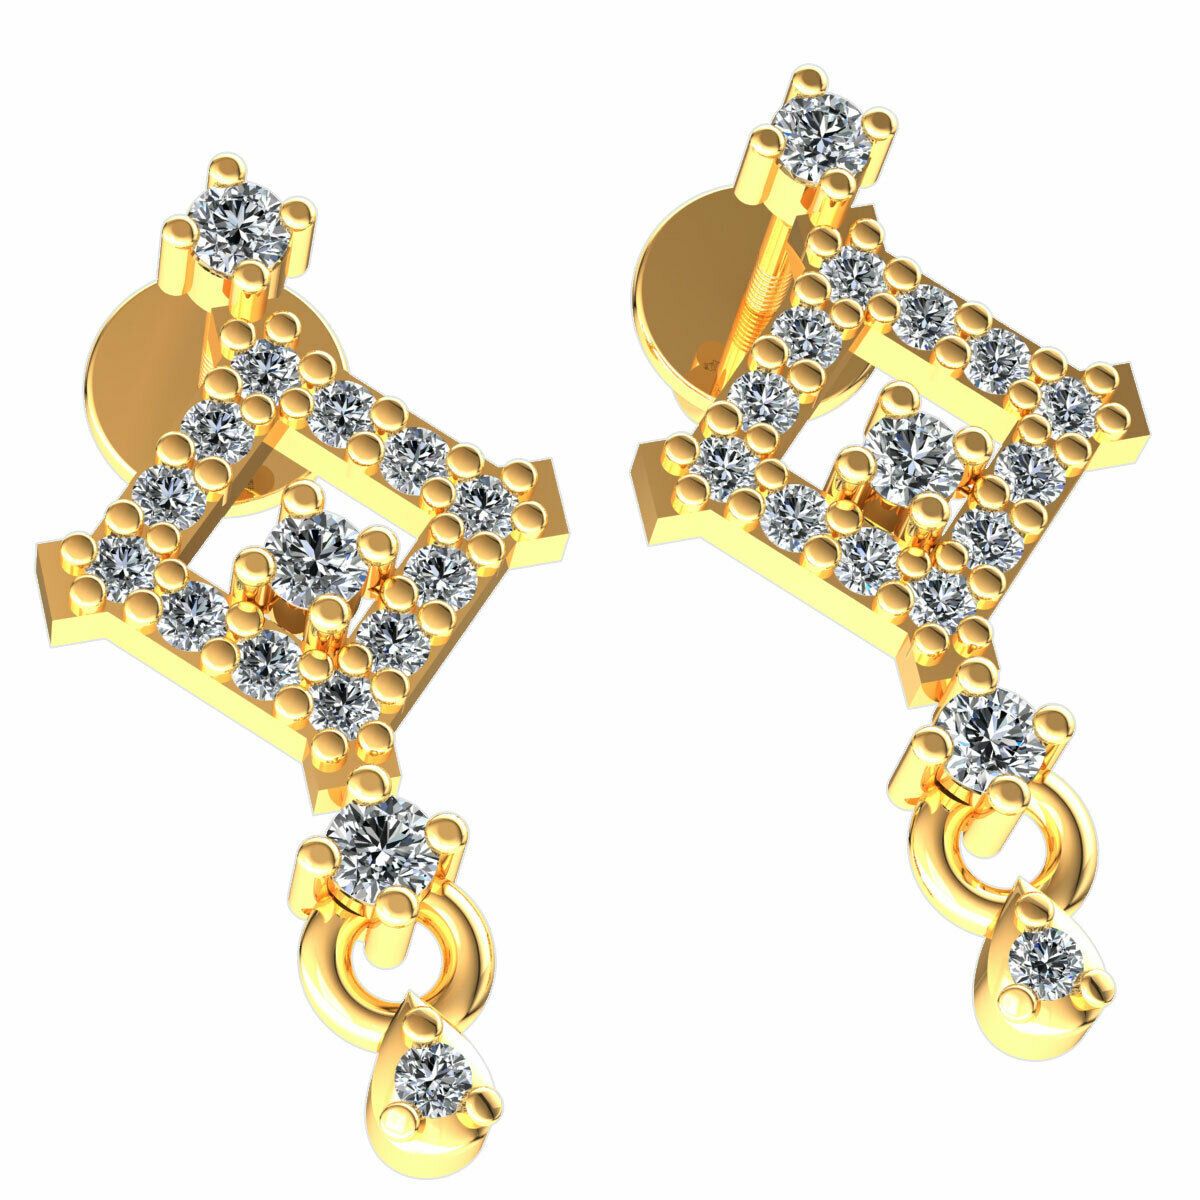 Real 0.25carat Round Cut Diamond Ladies Square Drop Earrings Solid 18K gold